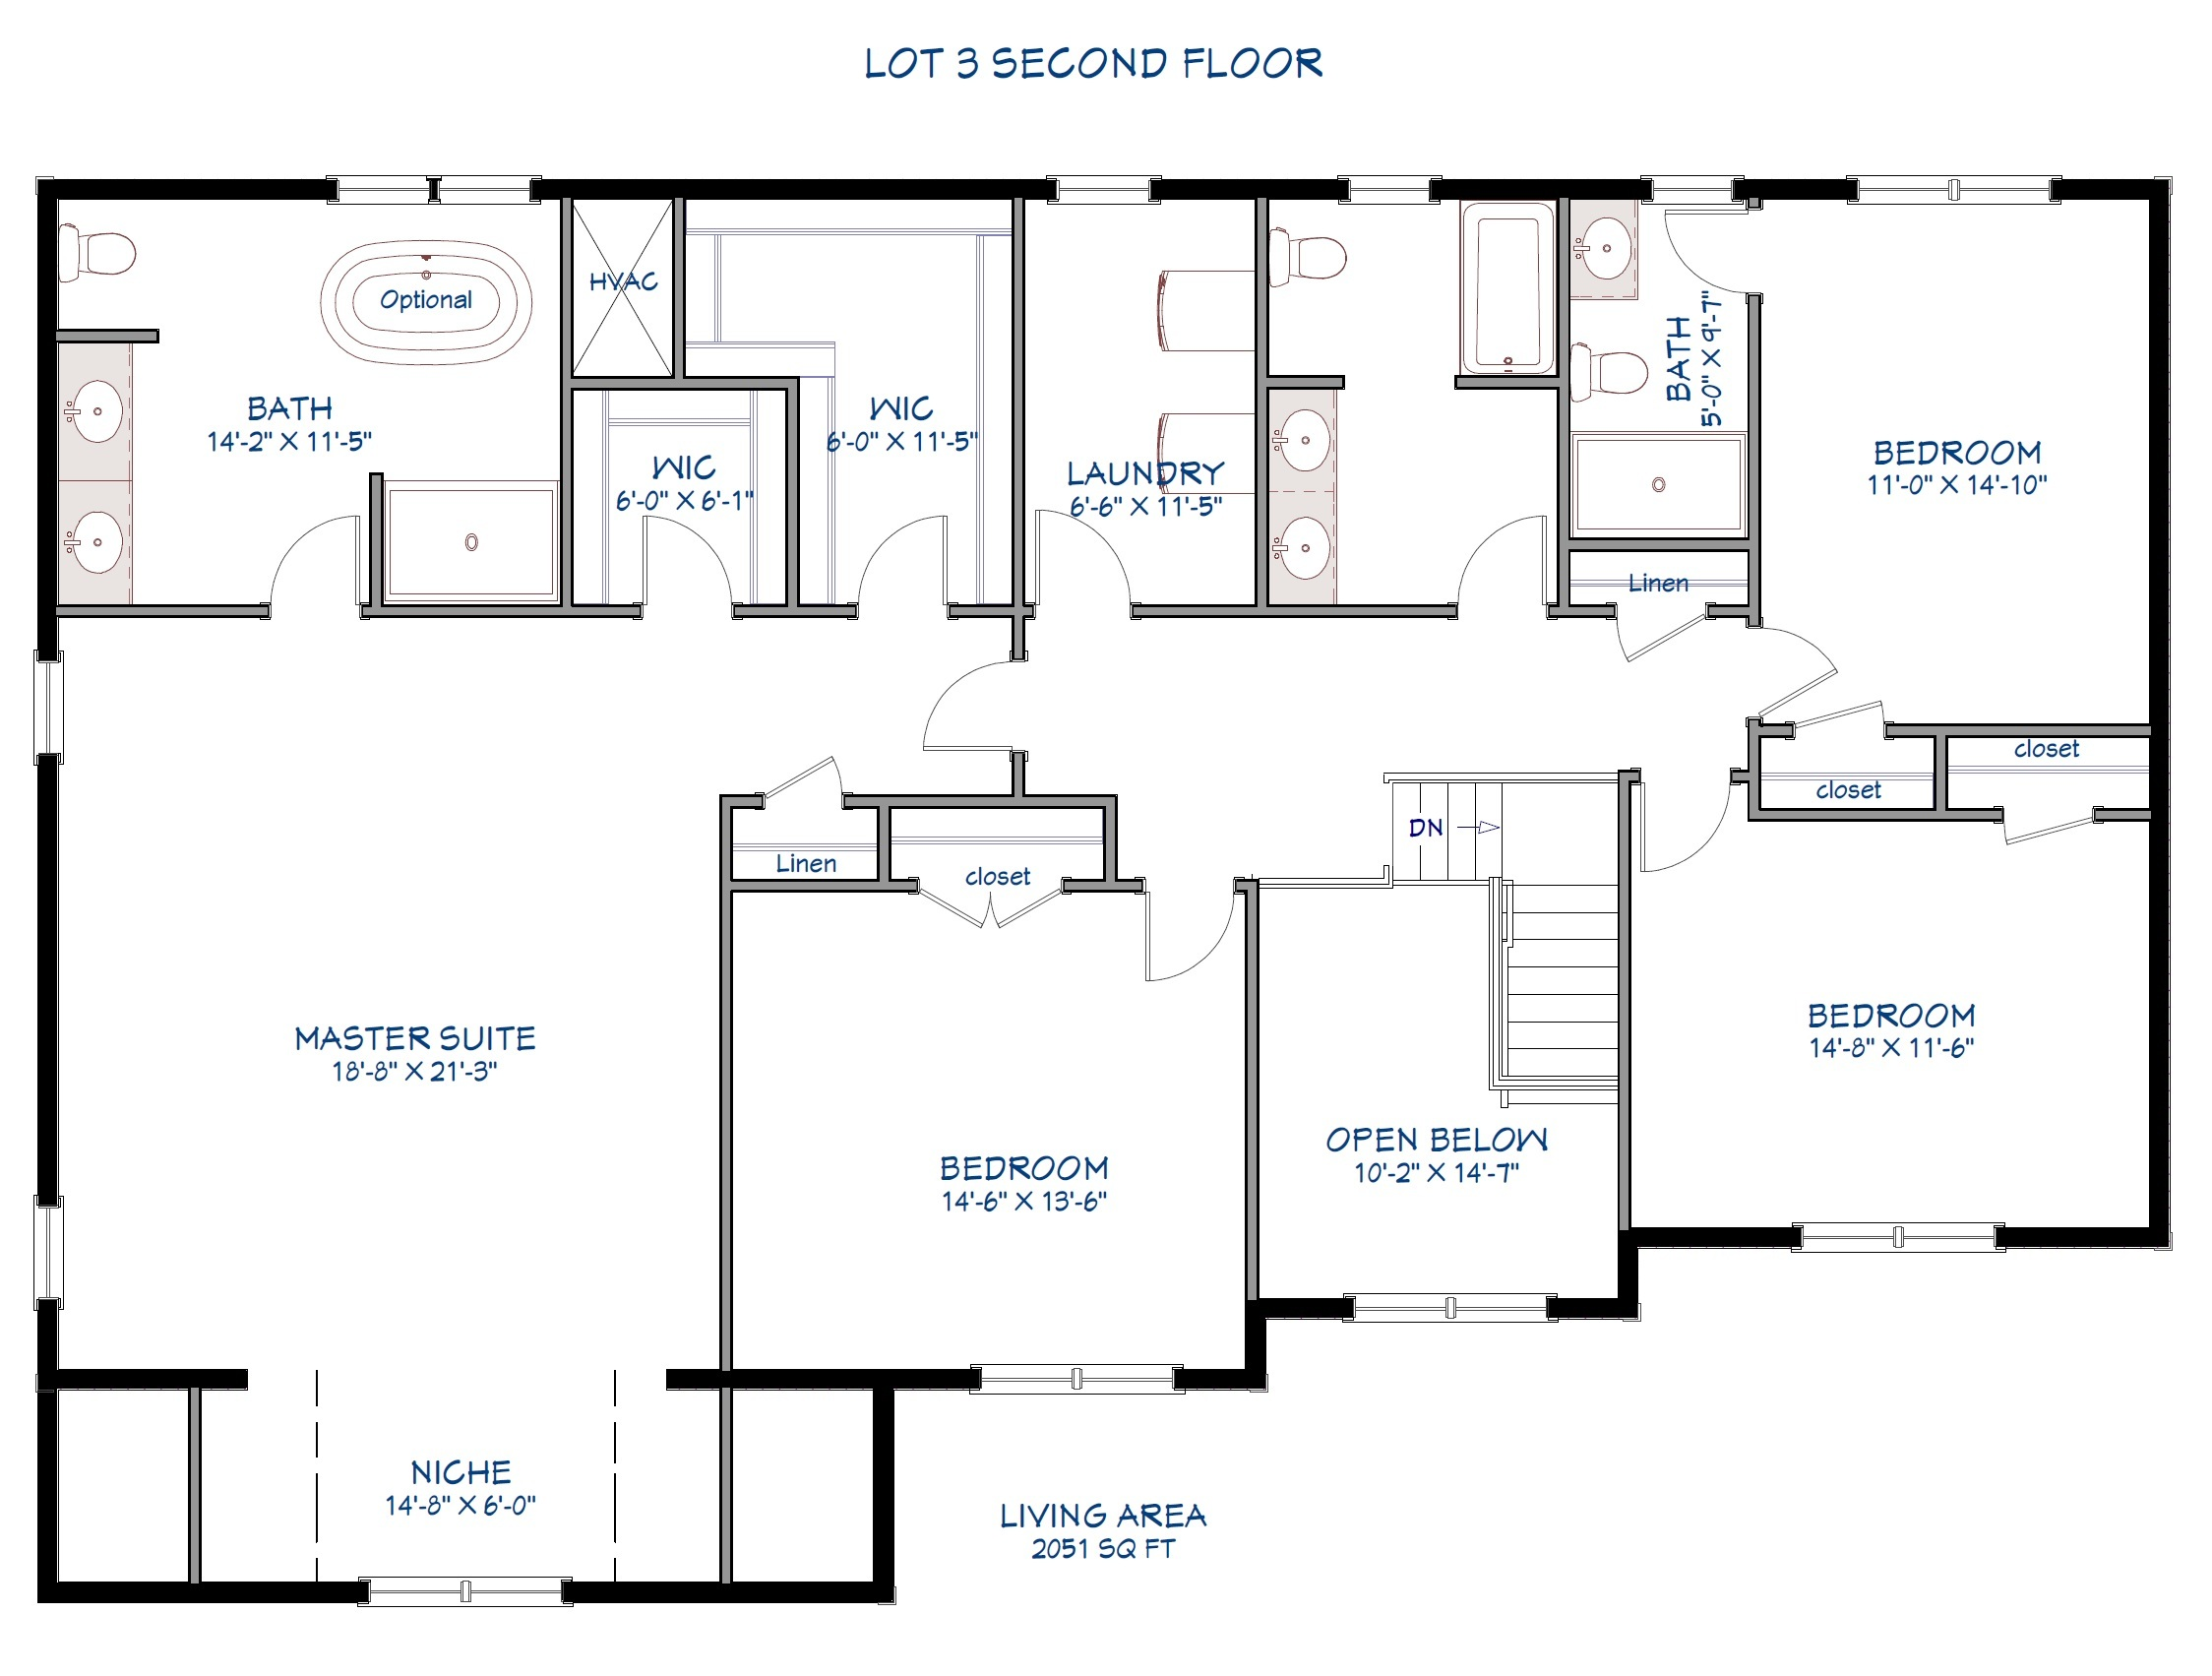 100 Mungo Homes Lincoln Floor Plan 100 Mungo Floor